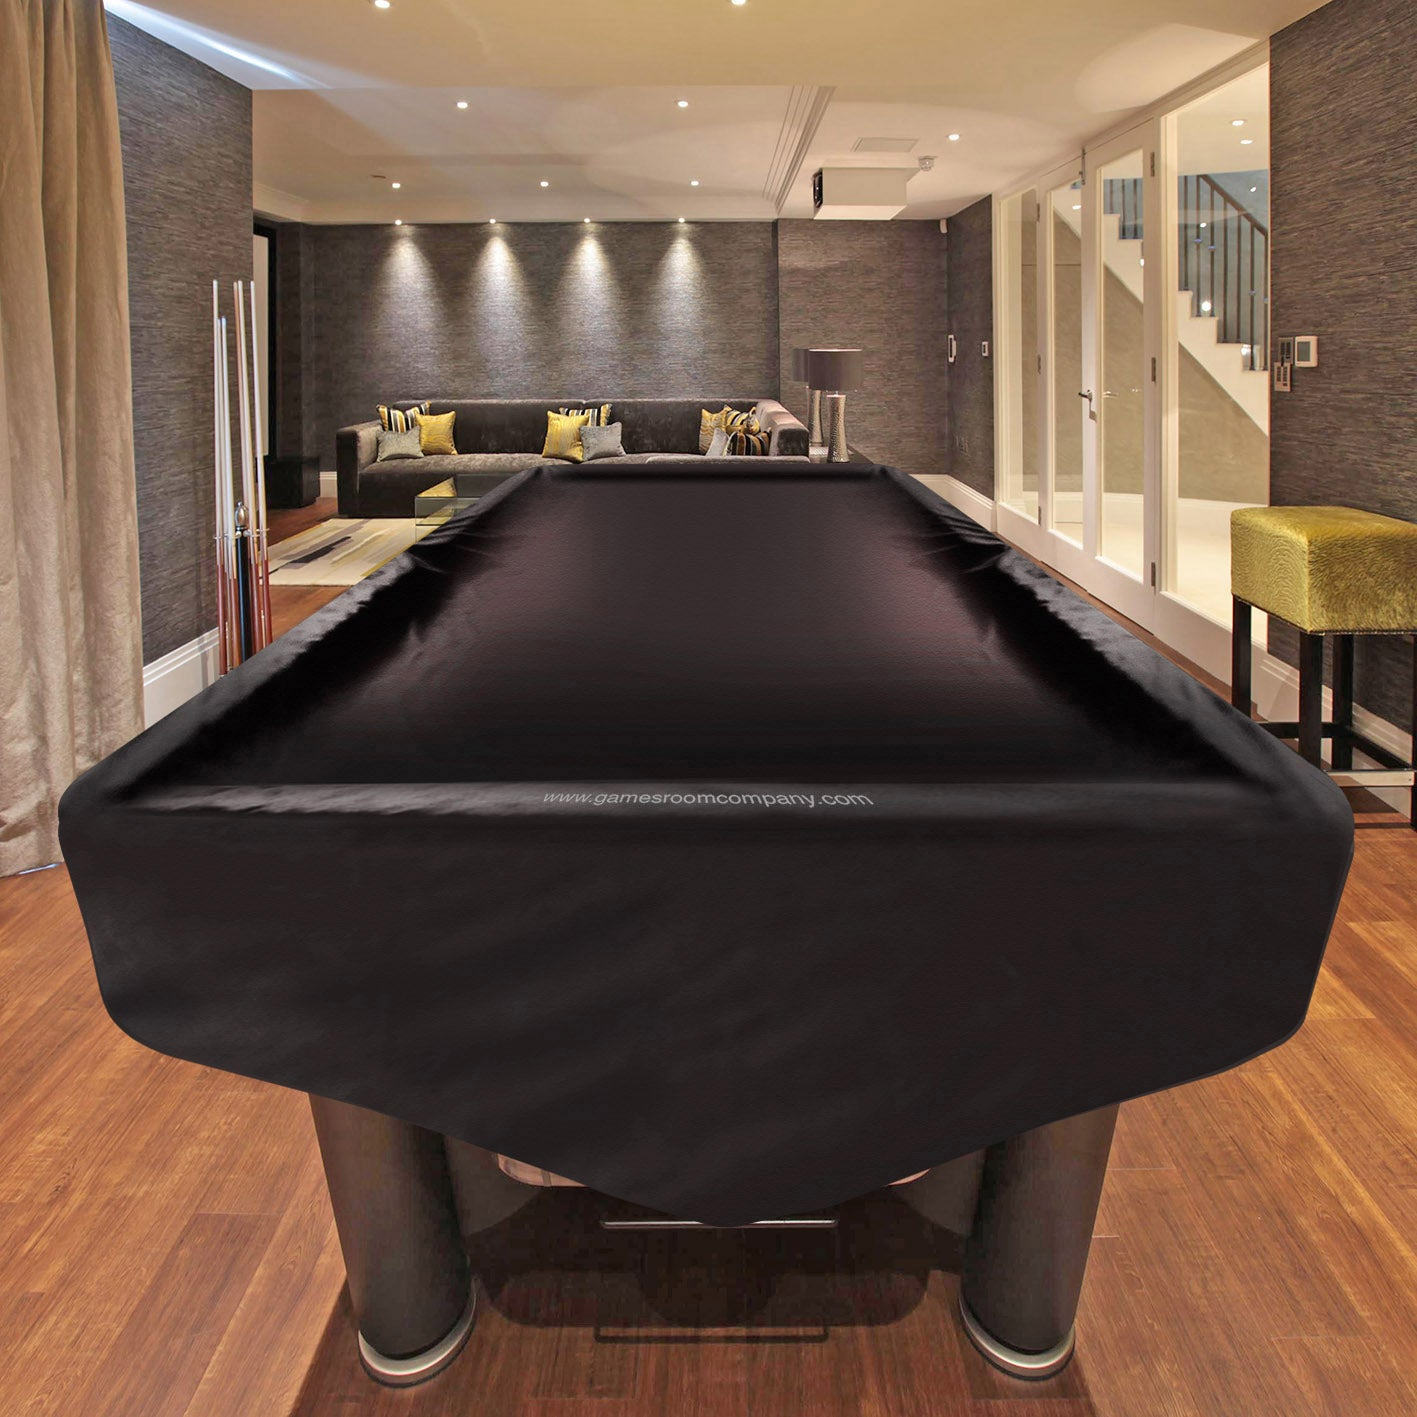 American pool table cover in black